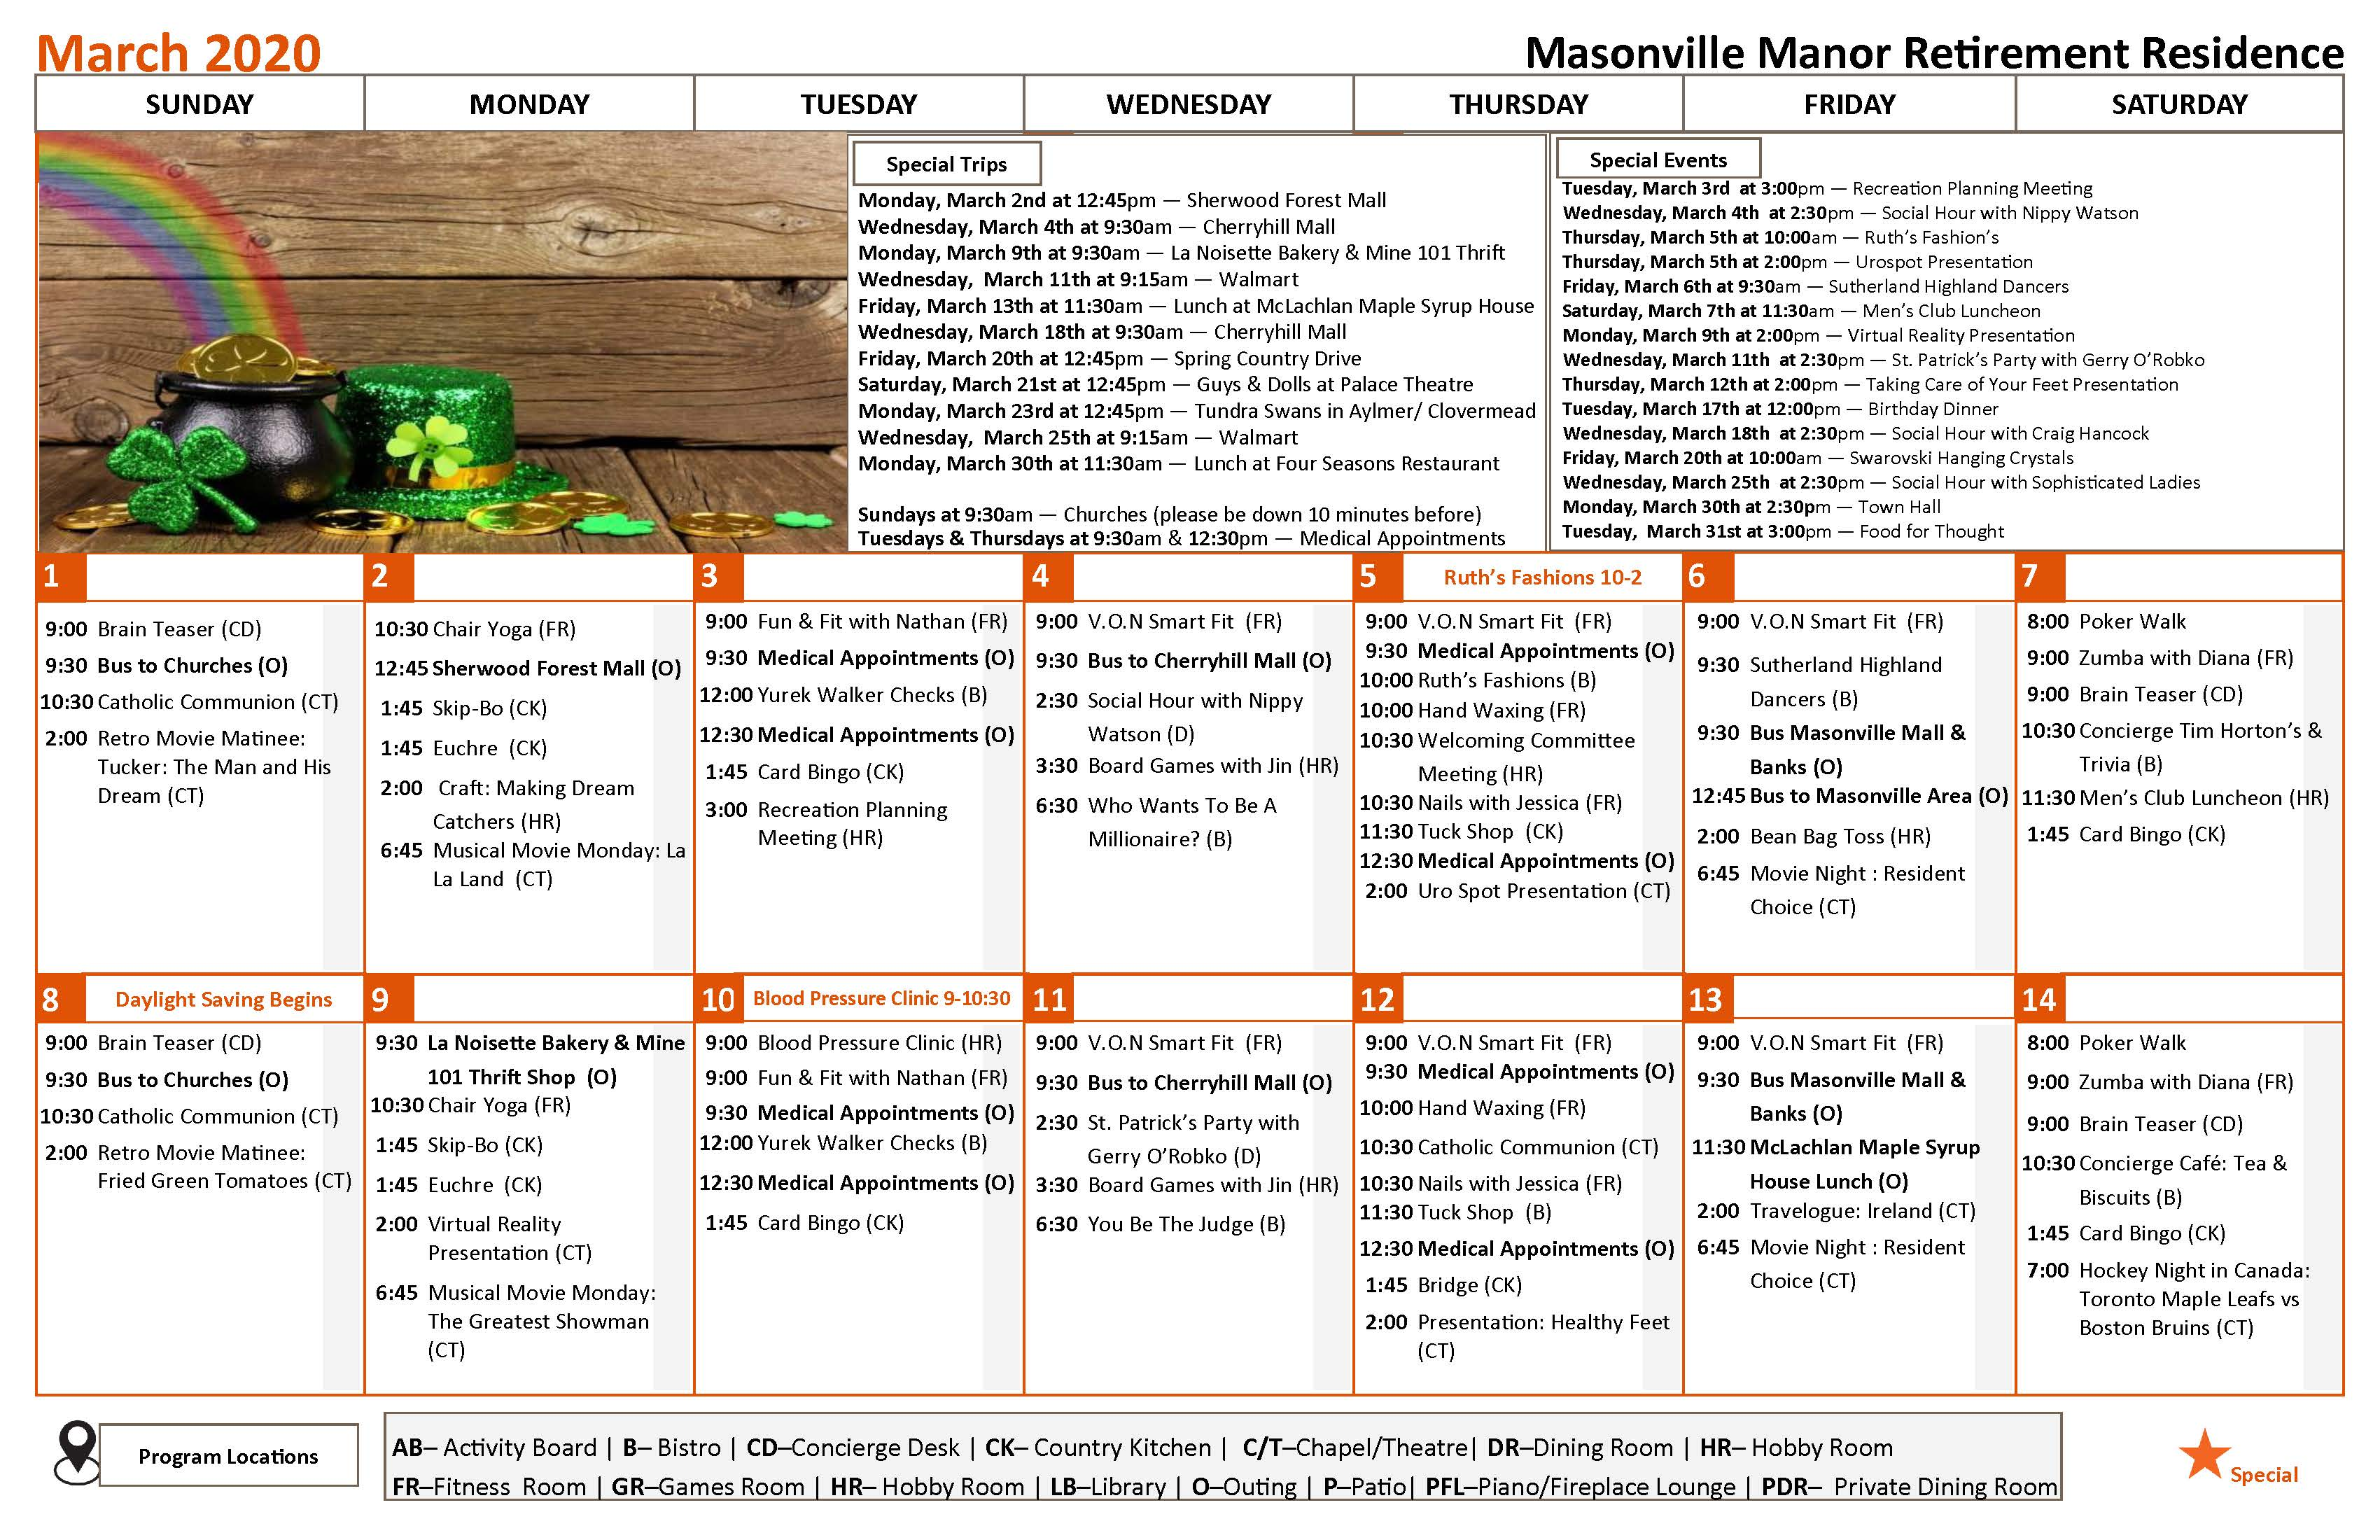 This is an image showing our monthly calendar of activities. If you have a question about our daily activities on a certain day, or about one of our programs, kindly give us a call at 519-663-0220. We would be happy to assist you in any way we can.